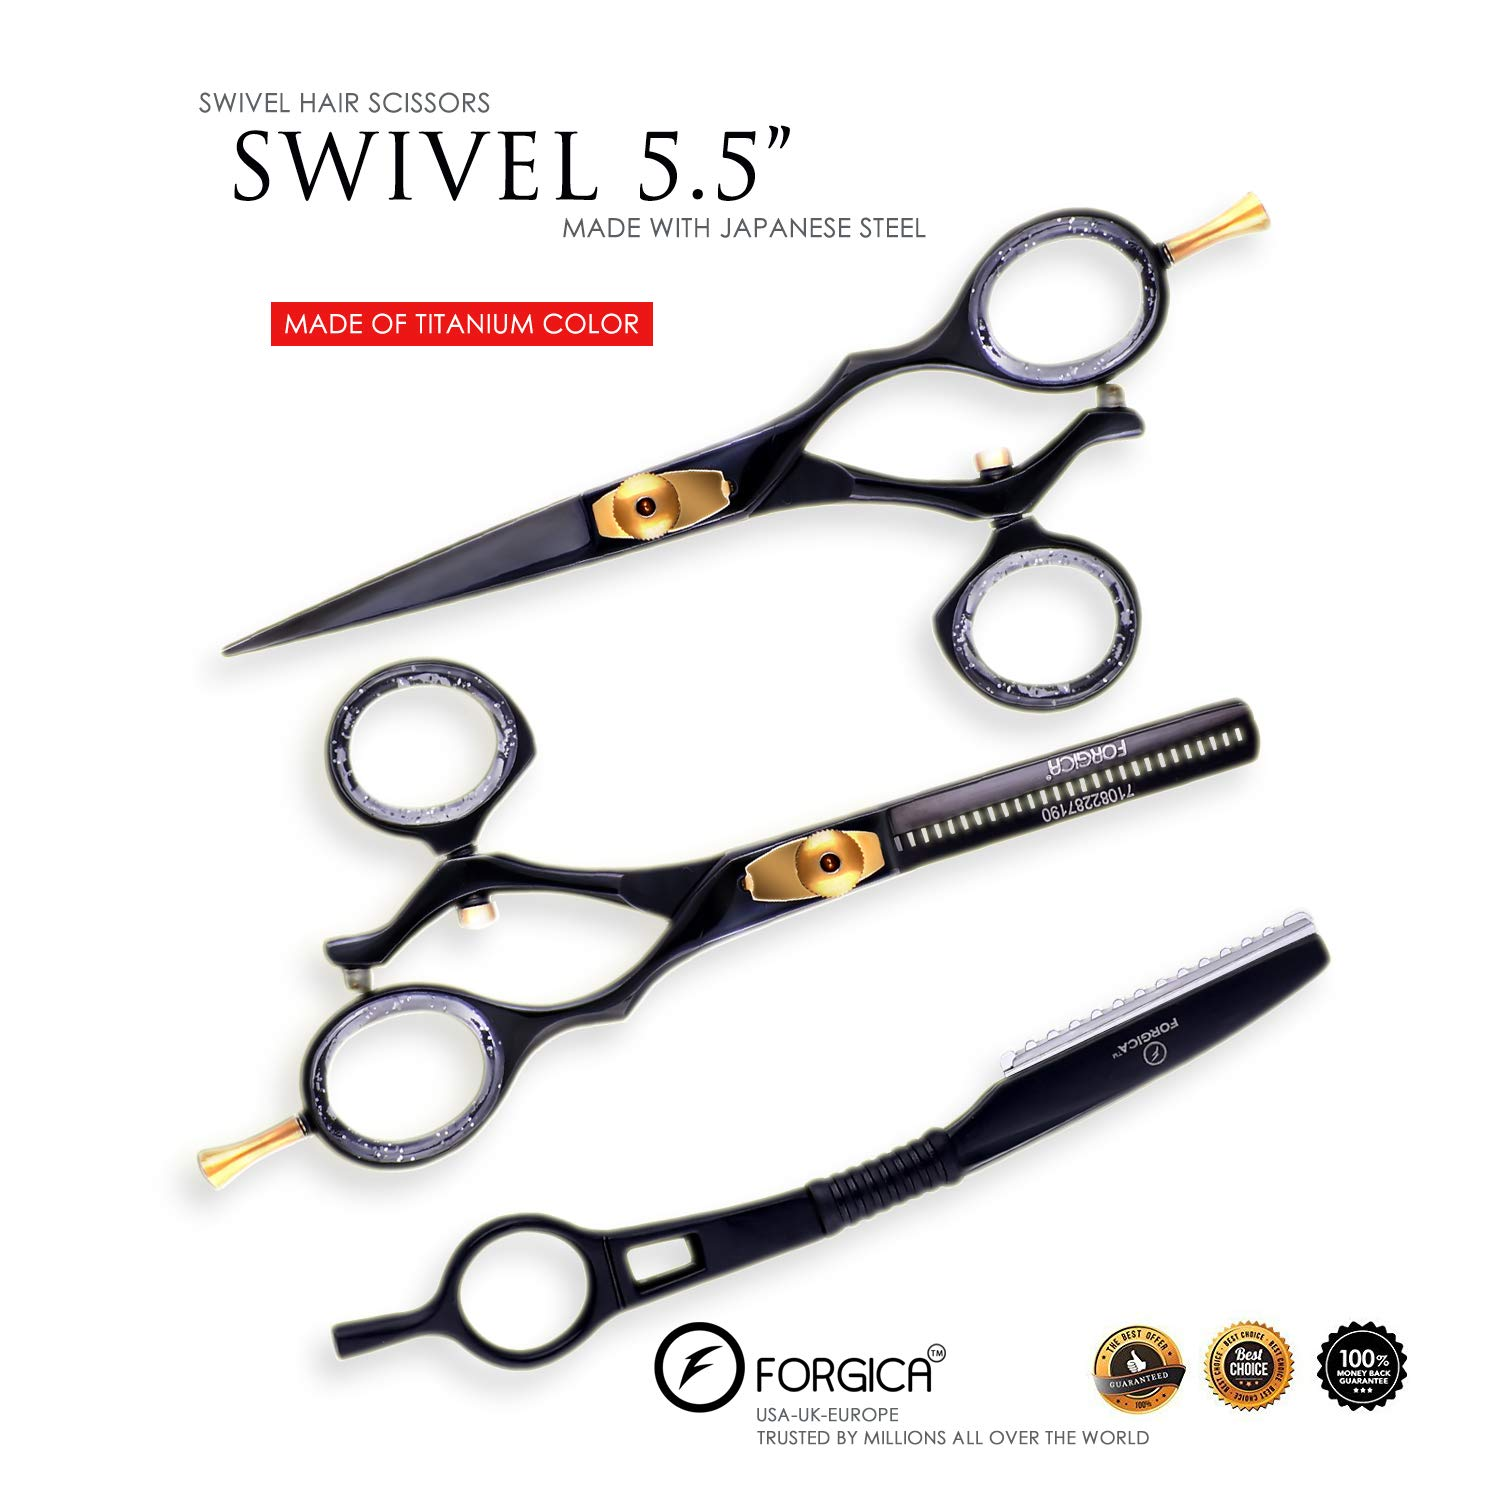 Hair Cutting Scissors/Thinning Shears/Professional Barber/Hair Straight Razor/Barber Scissors/Swivle Barber Shears with Fine Adjustment Screw Japanese Stainless Steel - Forgica (5.5) by Forgica